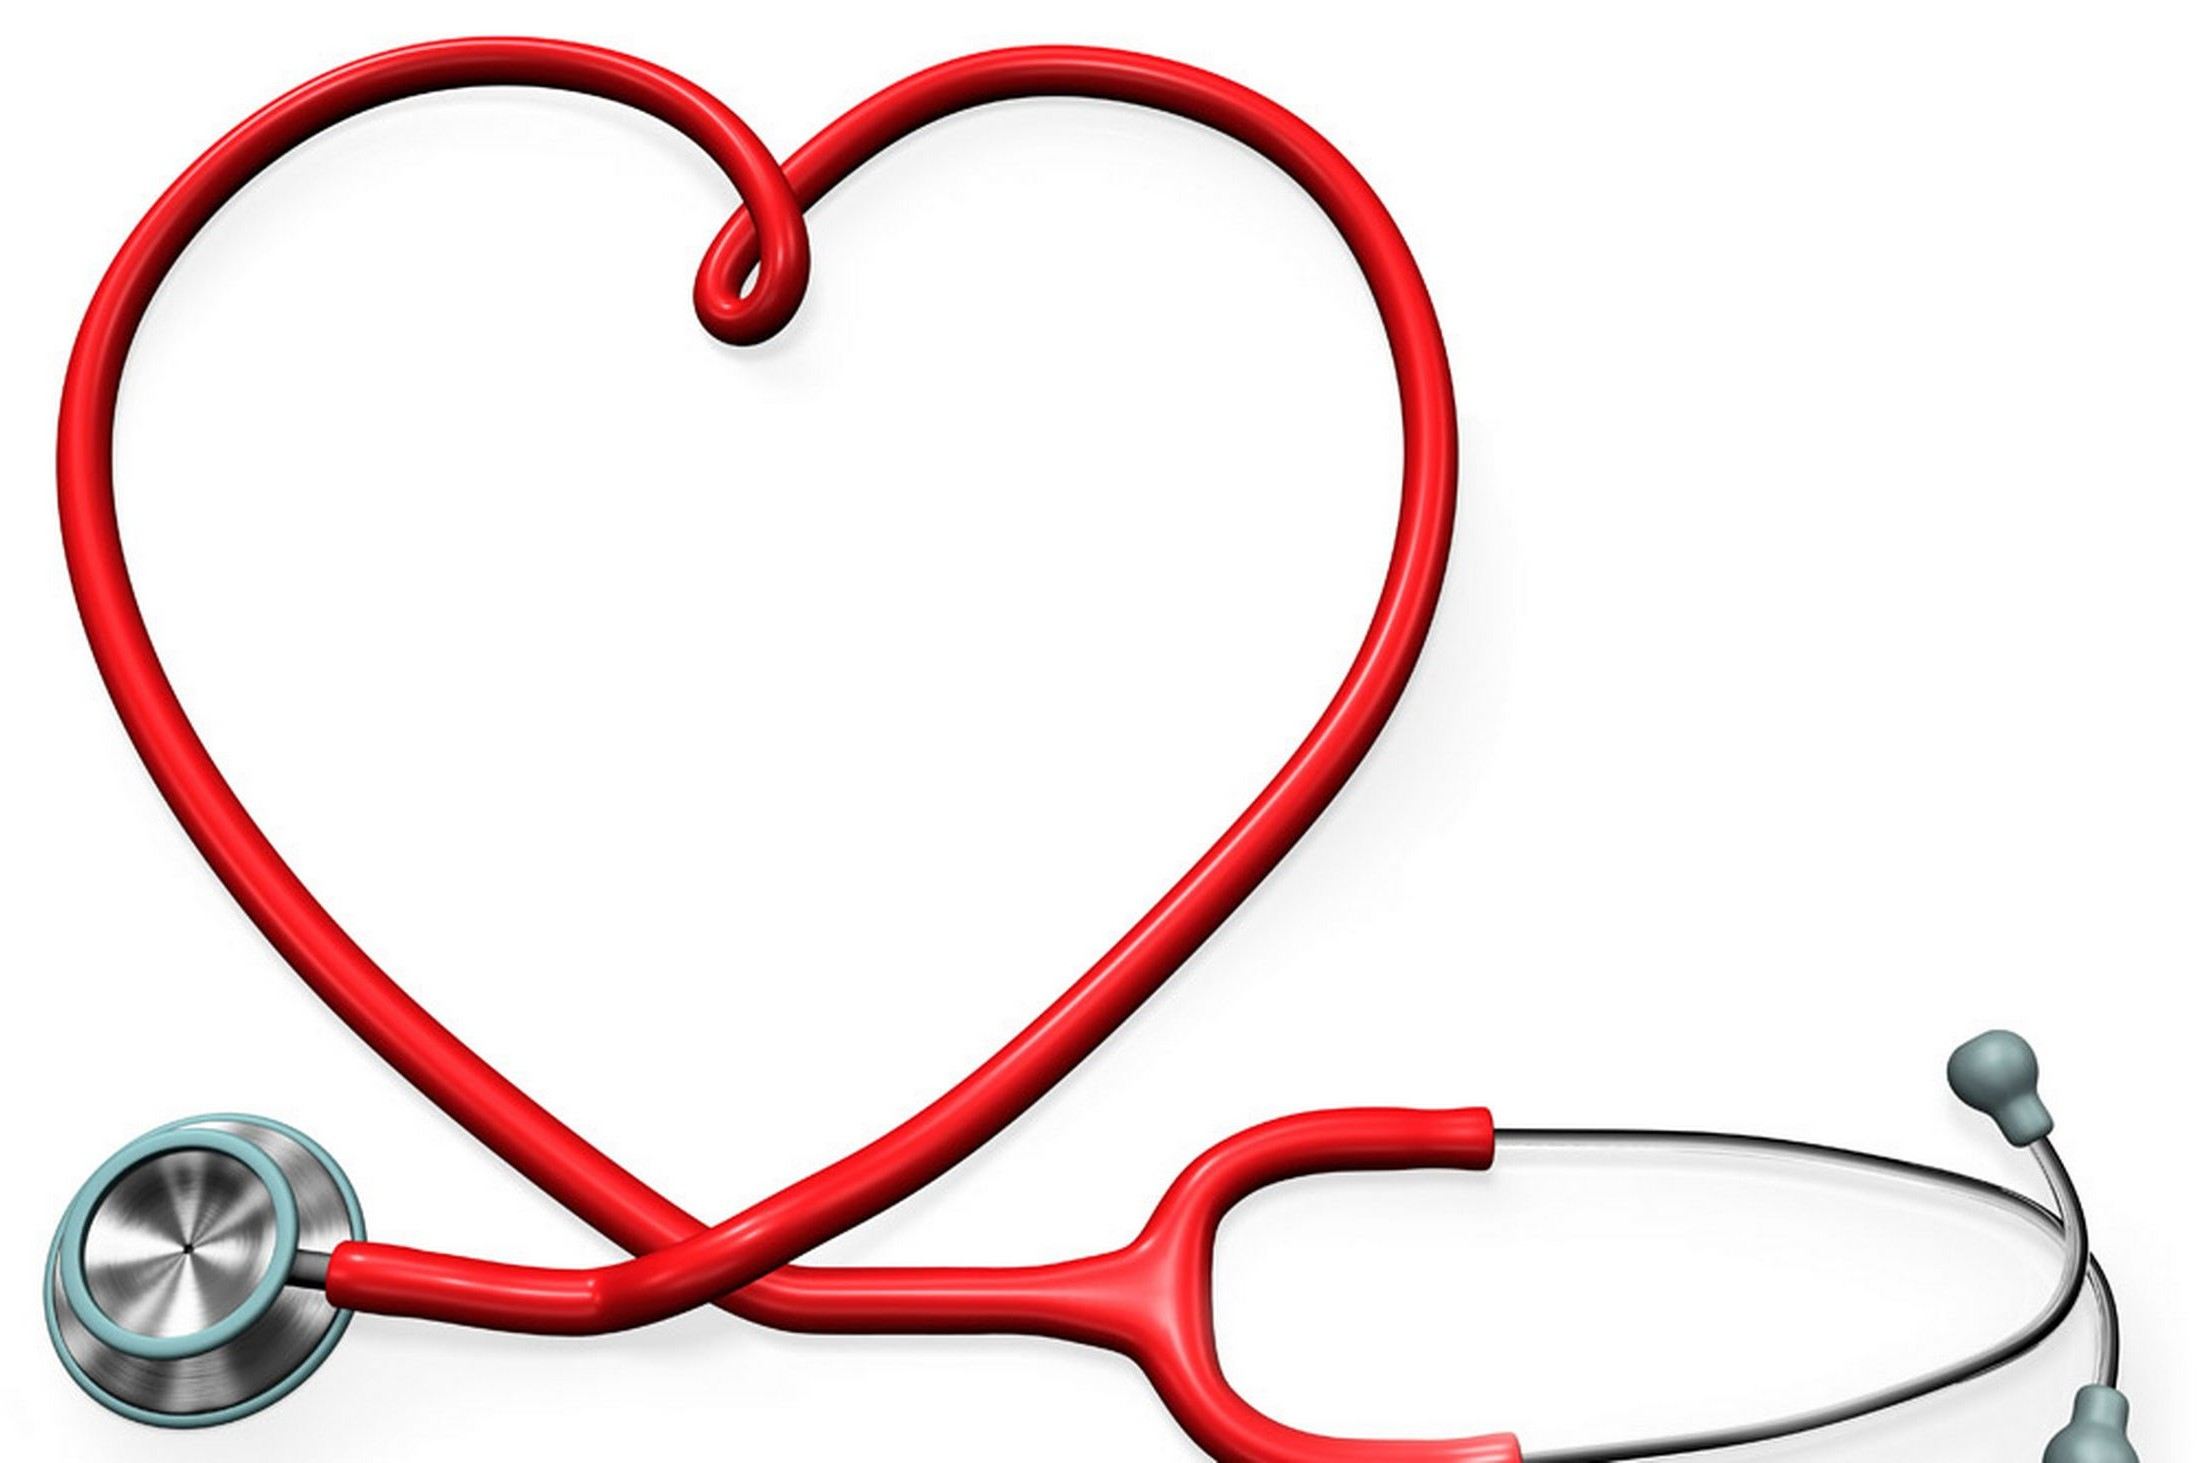 Stethoscope clipart 5 2